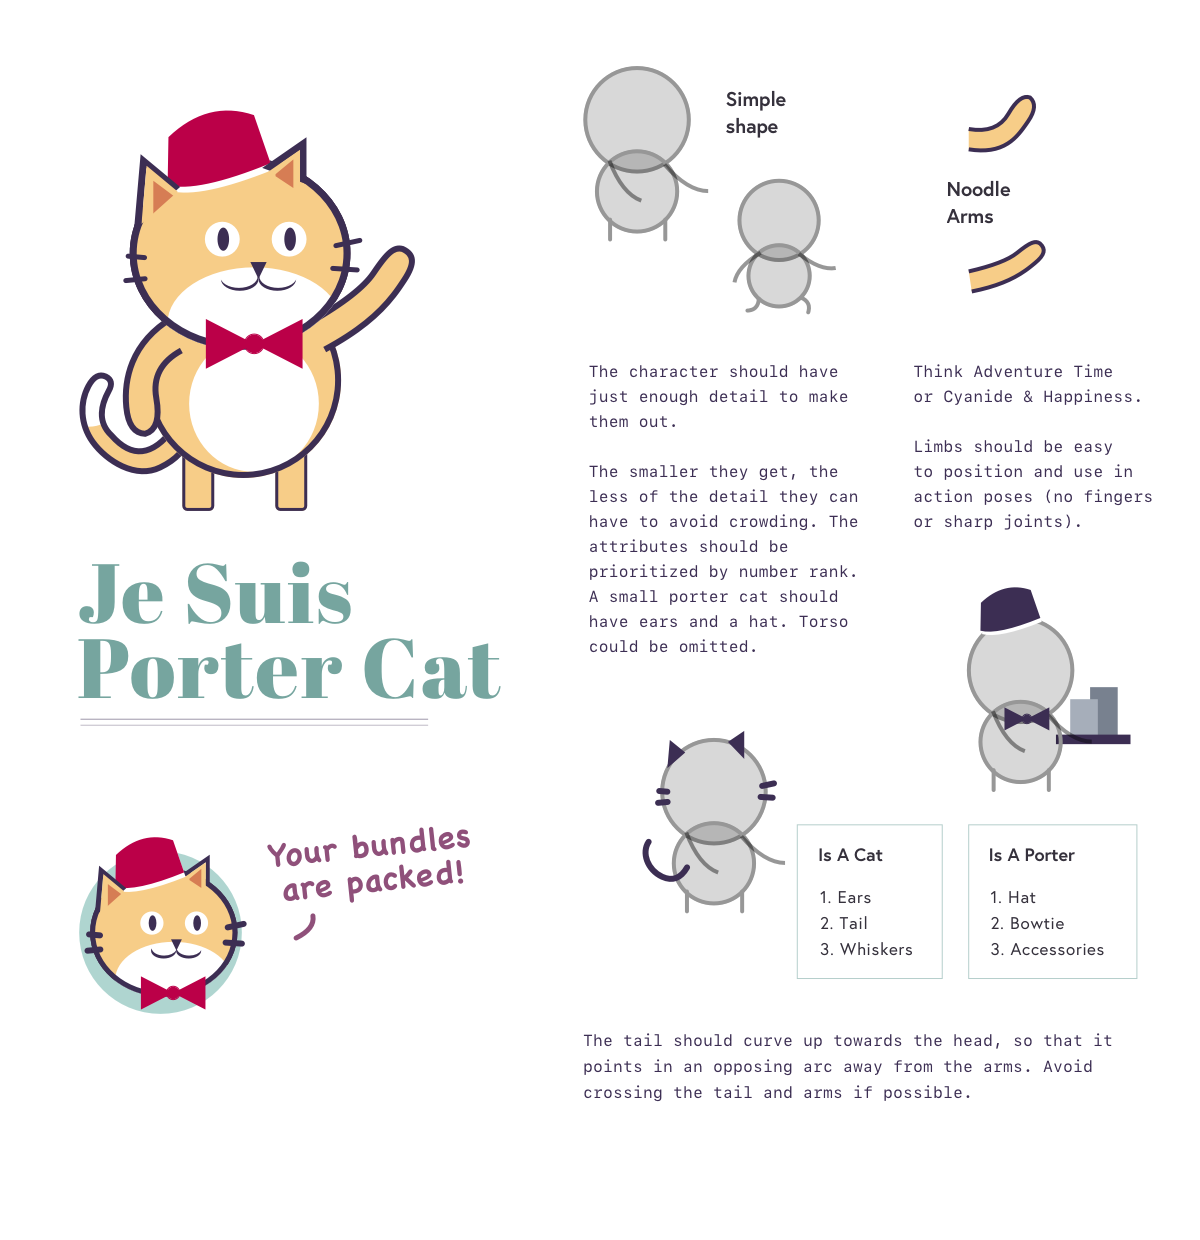 """Je Suis Porter Cat: Yellow cat standing and waving, wearing a red bellhop hat and bowtie. Underneath is a picture of the cat's face saying """"your bundles are packed!"""". To the side is a repeat of the guidelines below for drawing the Porter Cat mascot"""